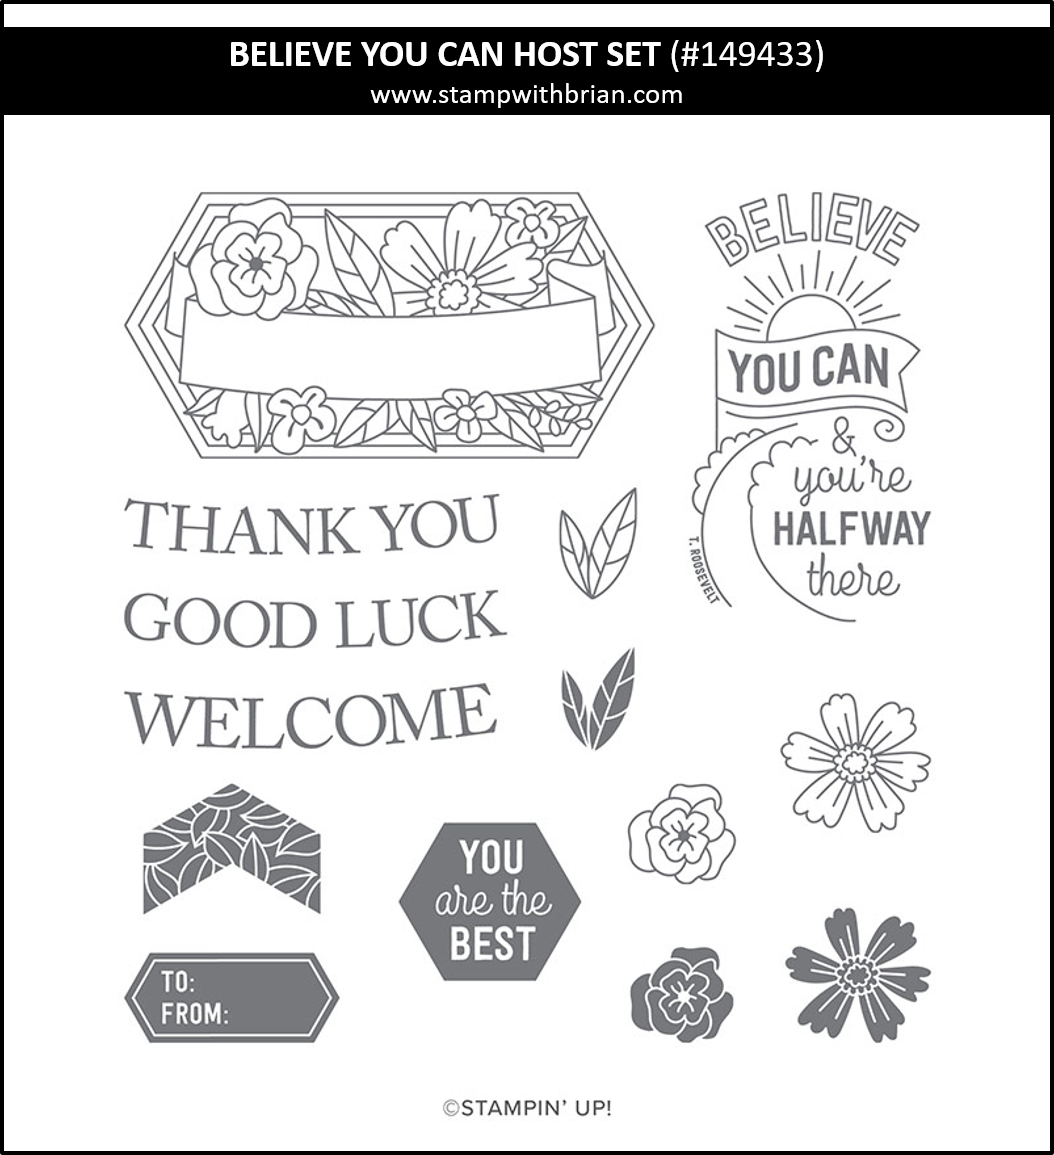 Believe You Can Host Set, Stampin' Up!, 149433